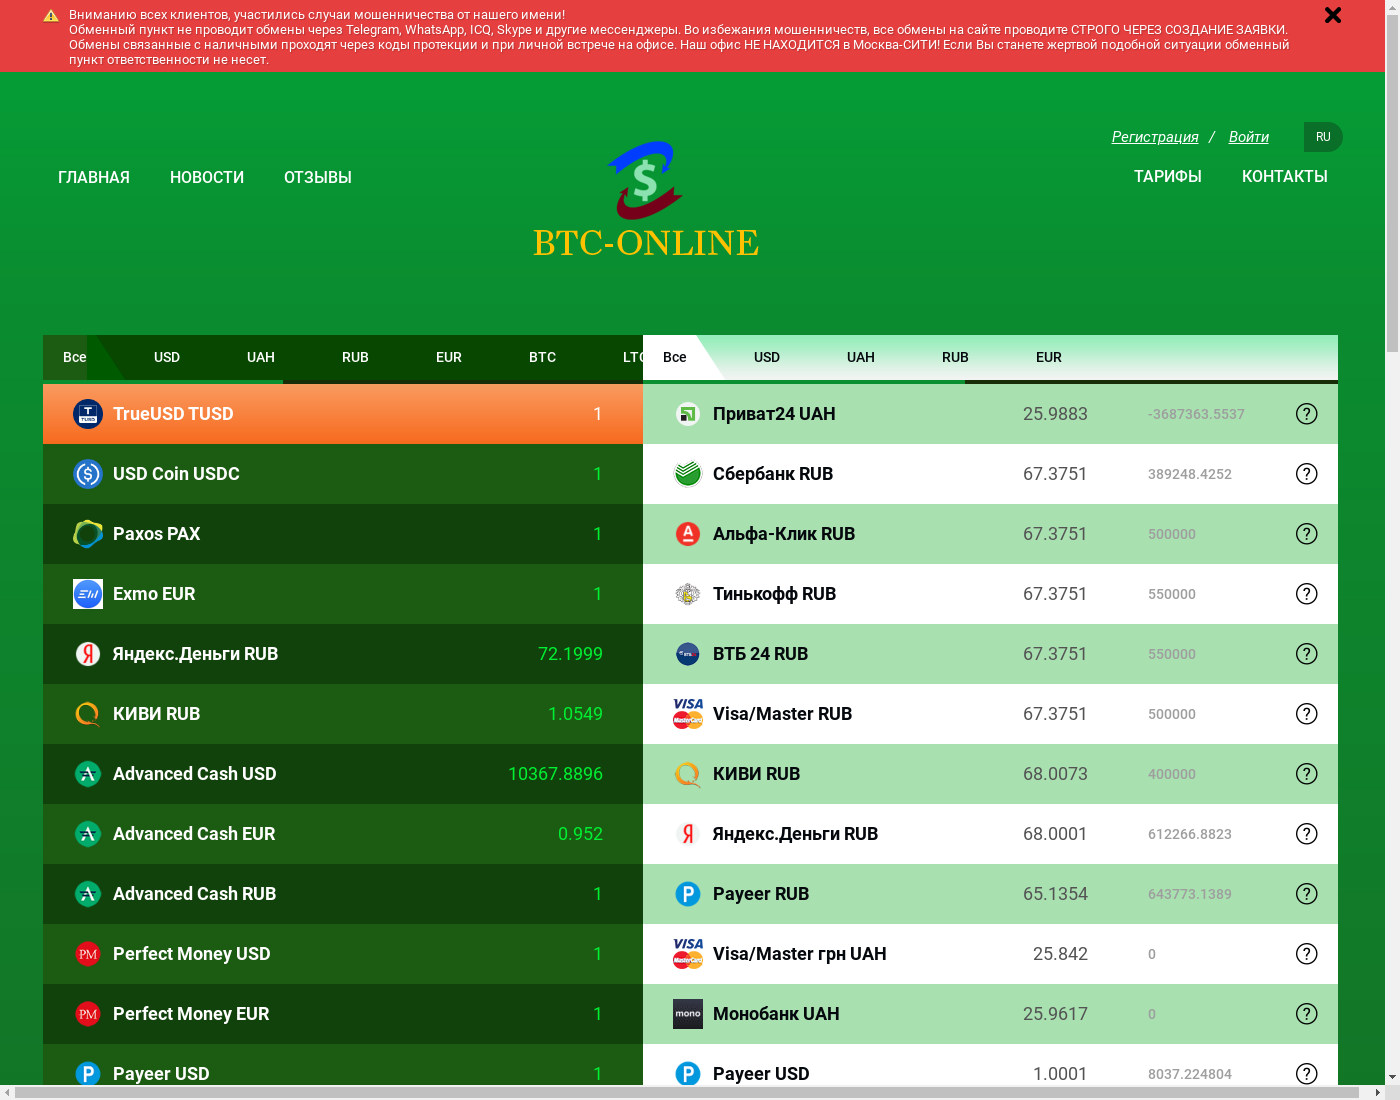 btc-online user interface: the home page in English